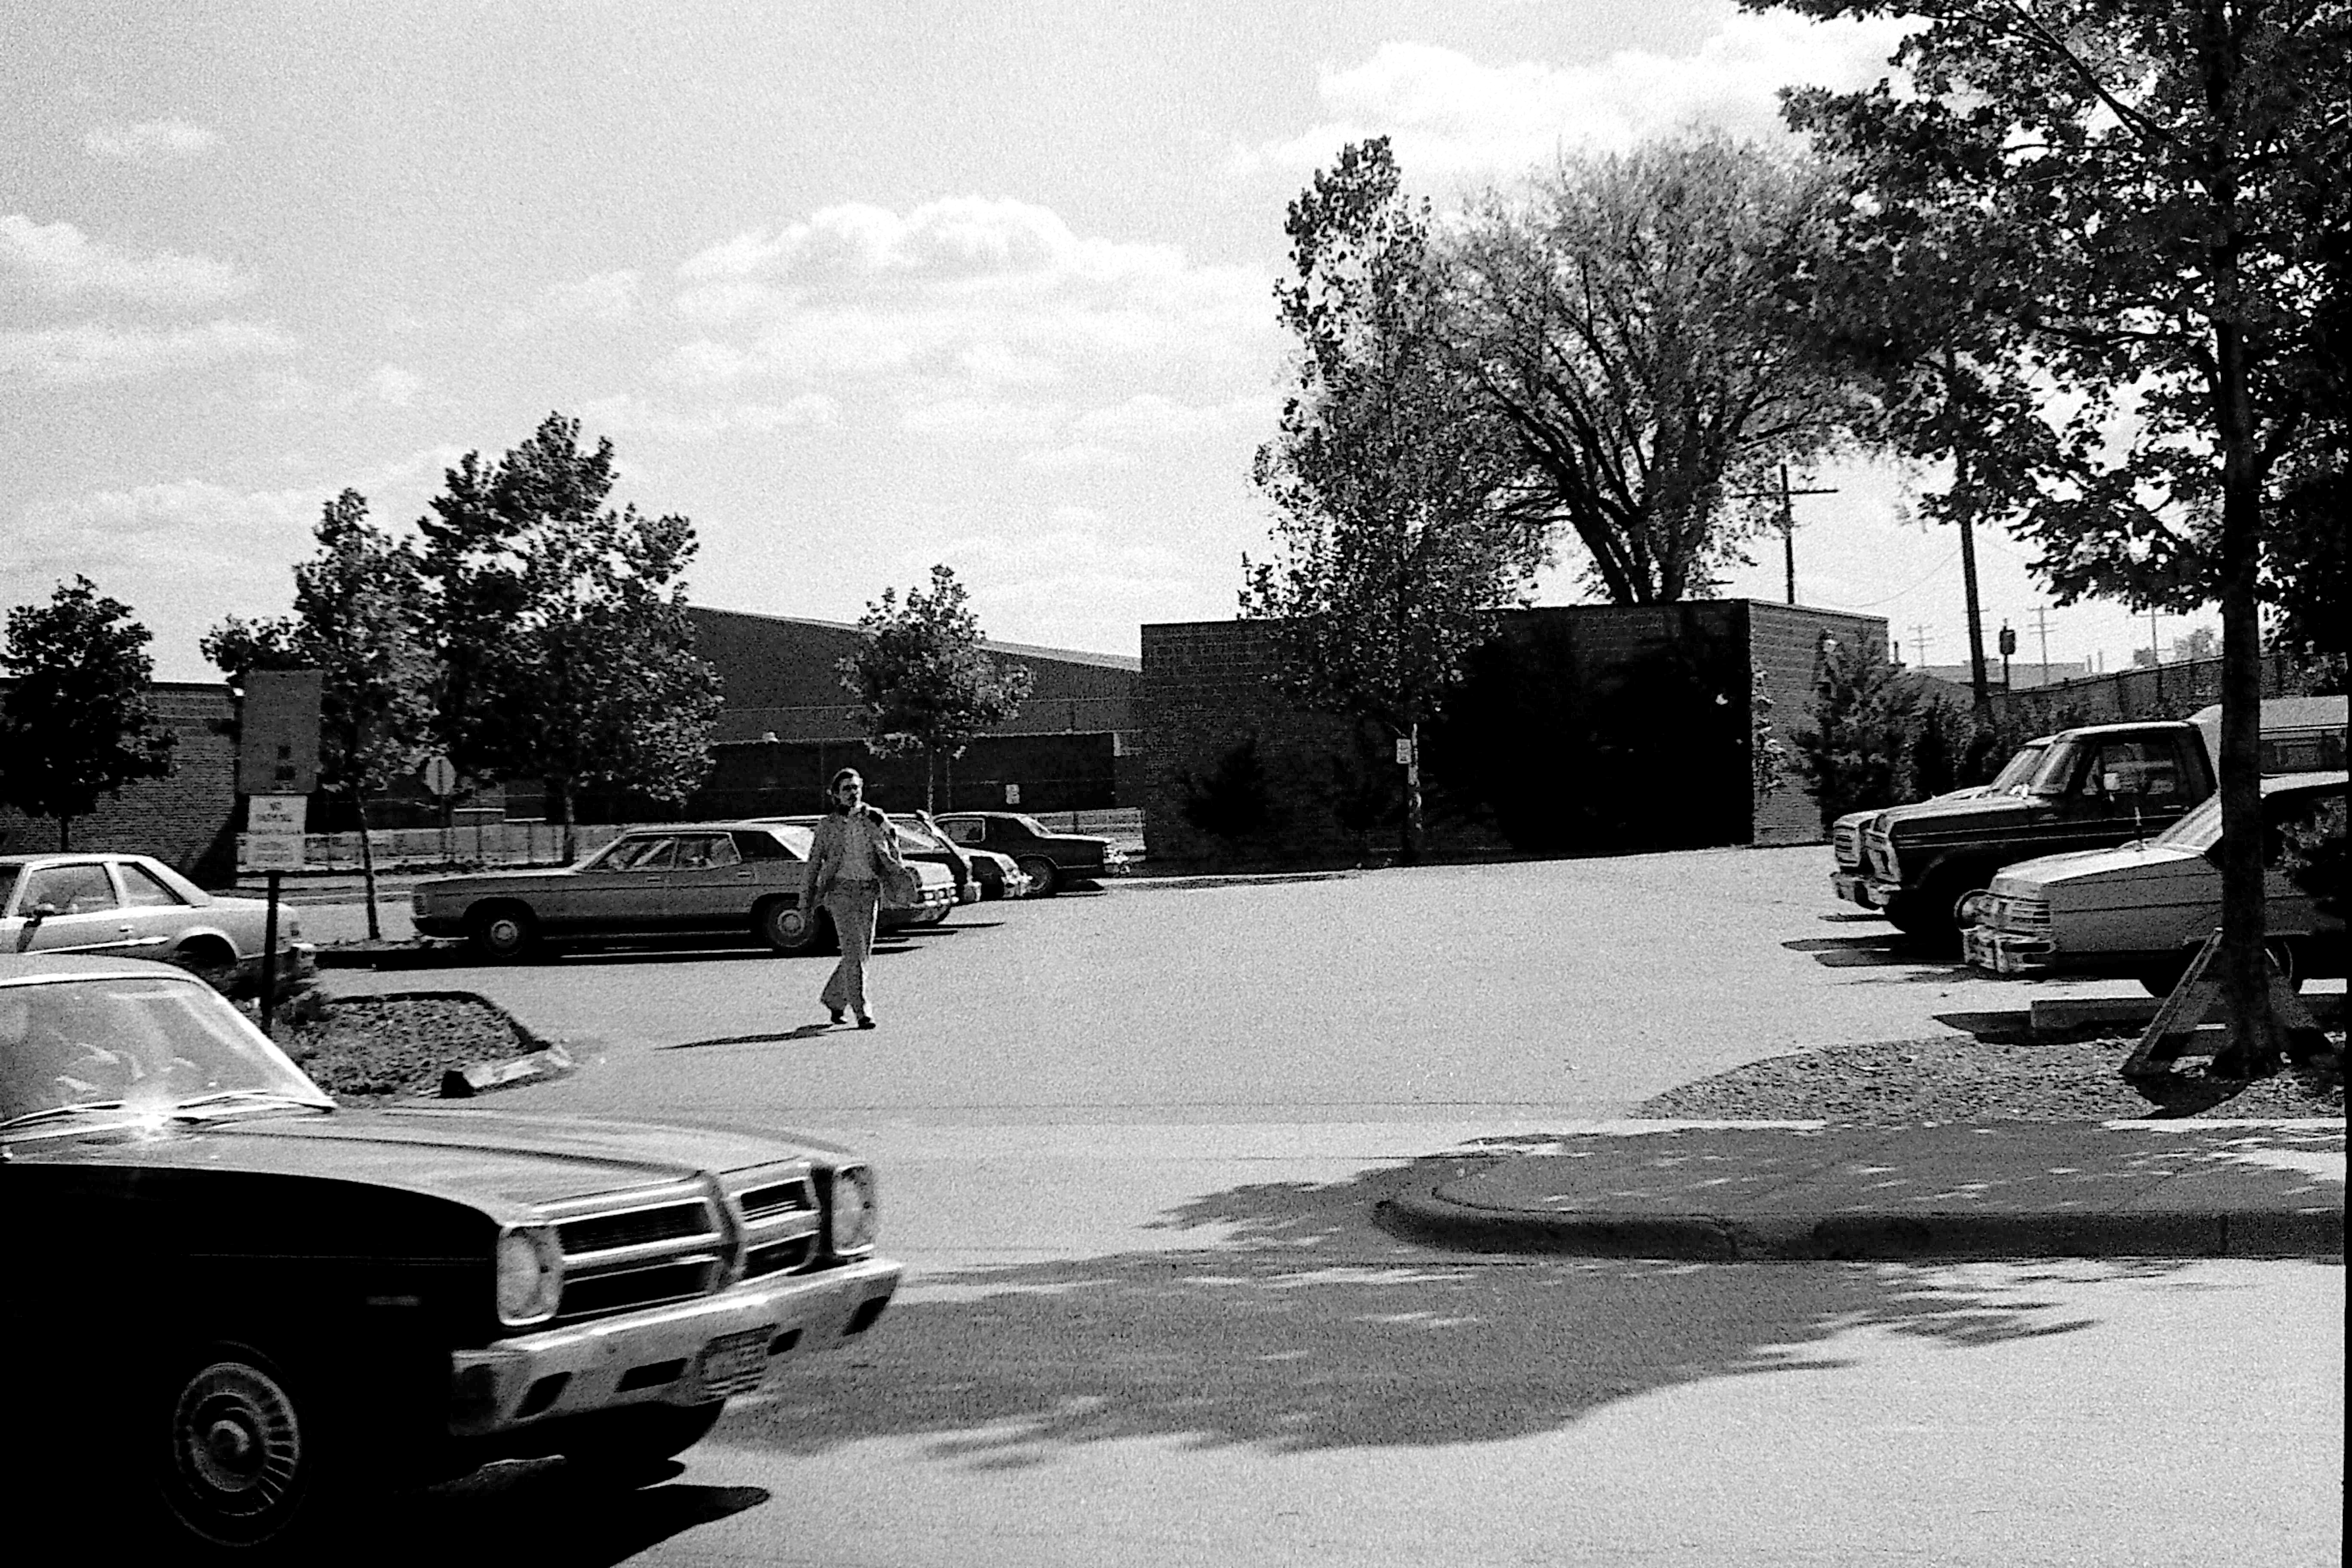 Parking Lot at Revelli Hall, 1977 image